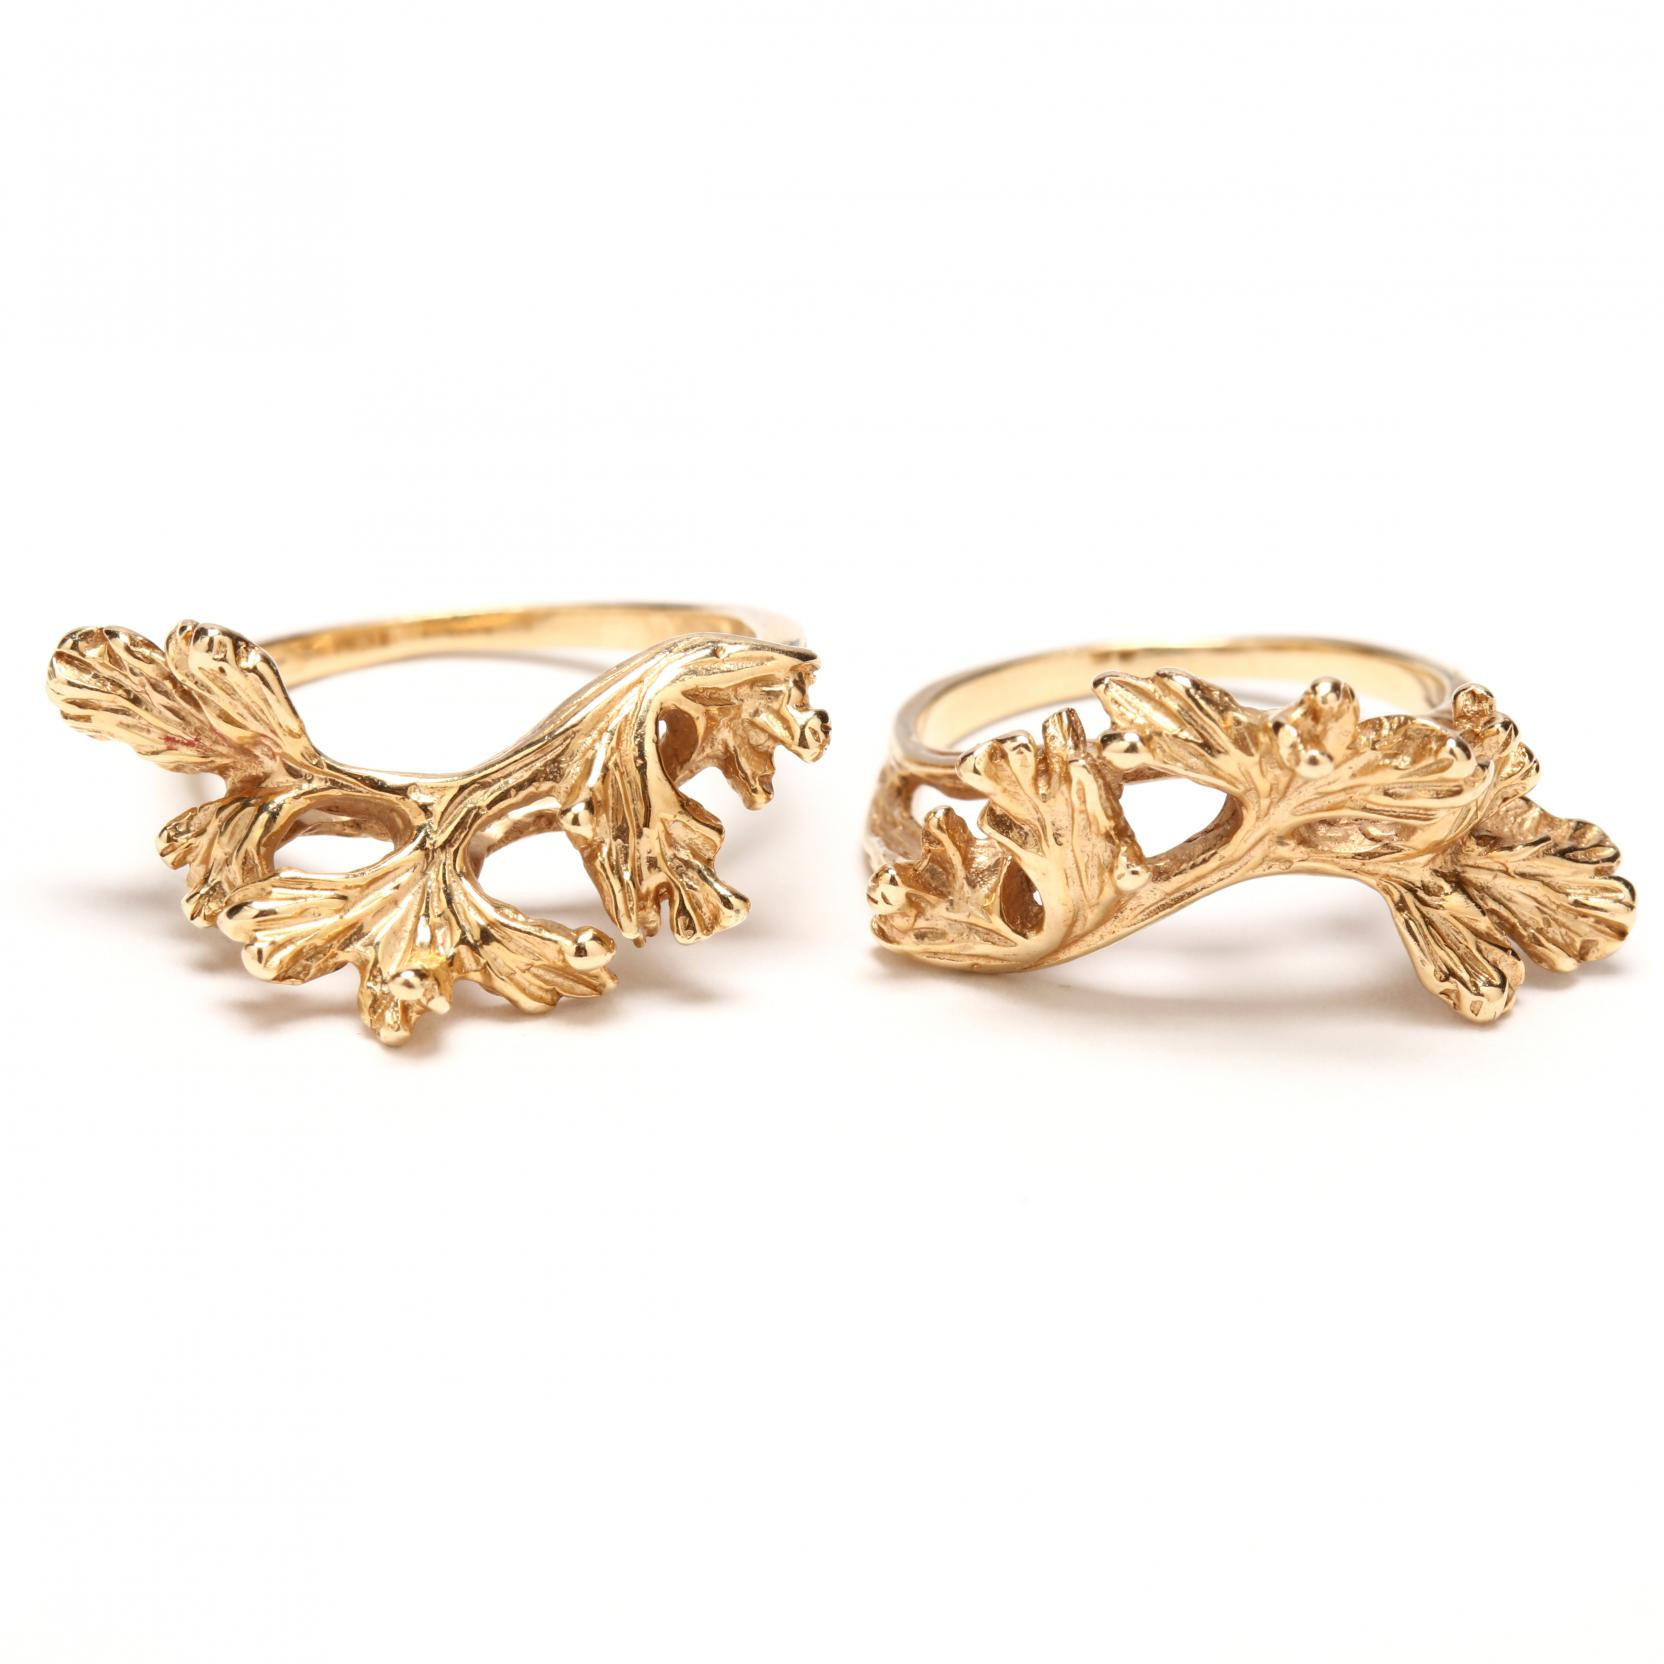 pair-of-14kt-yellow-gold-ring-guards